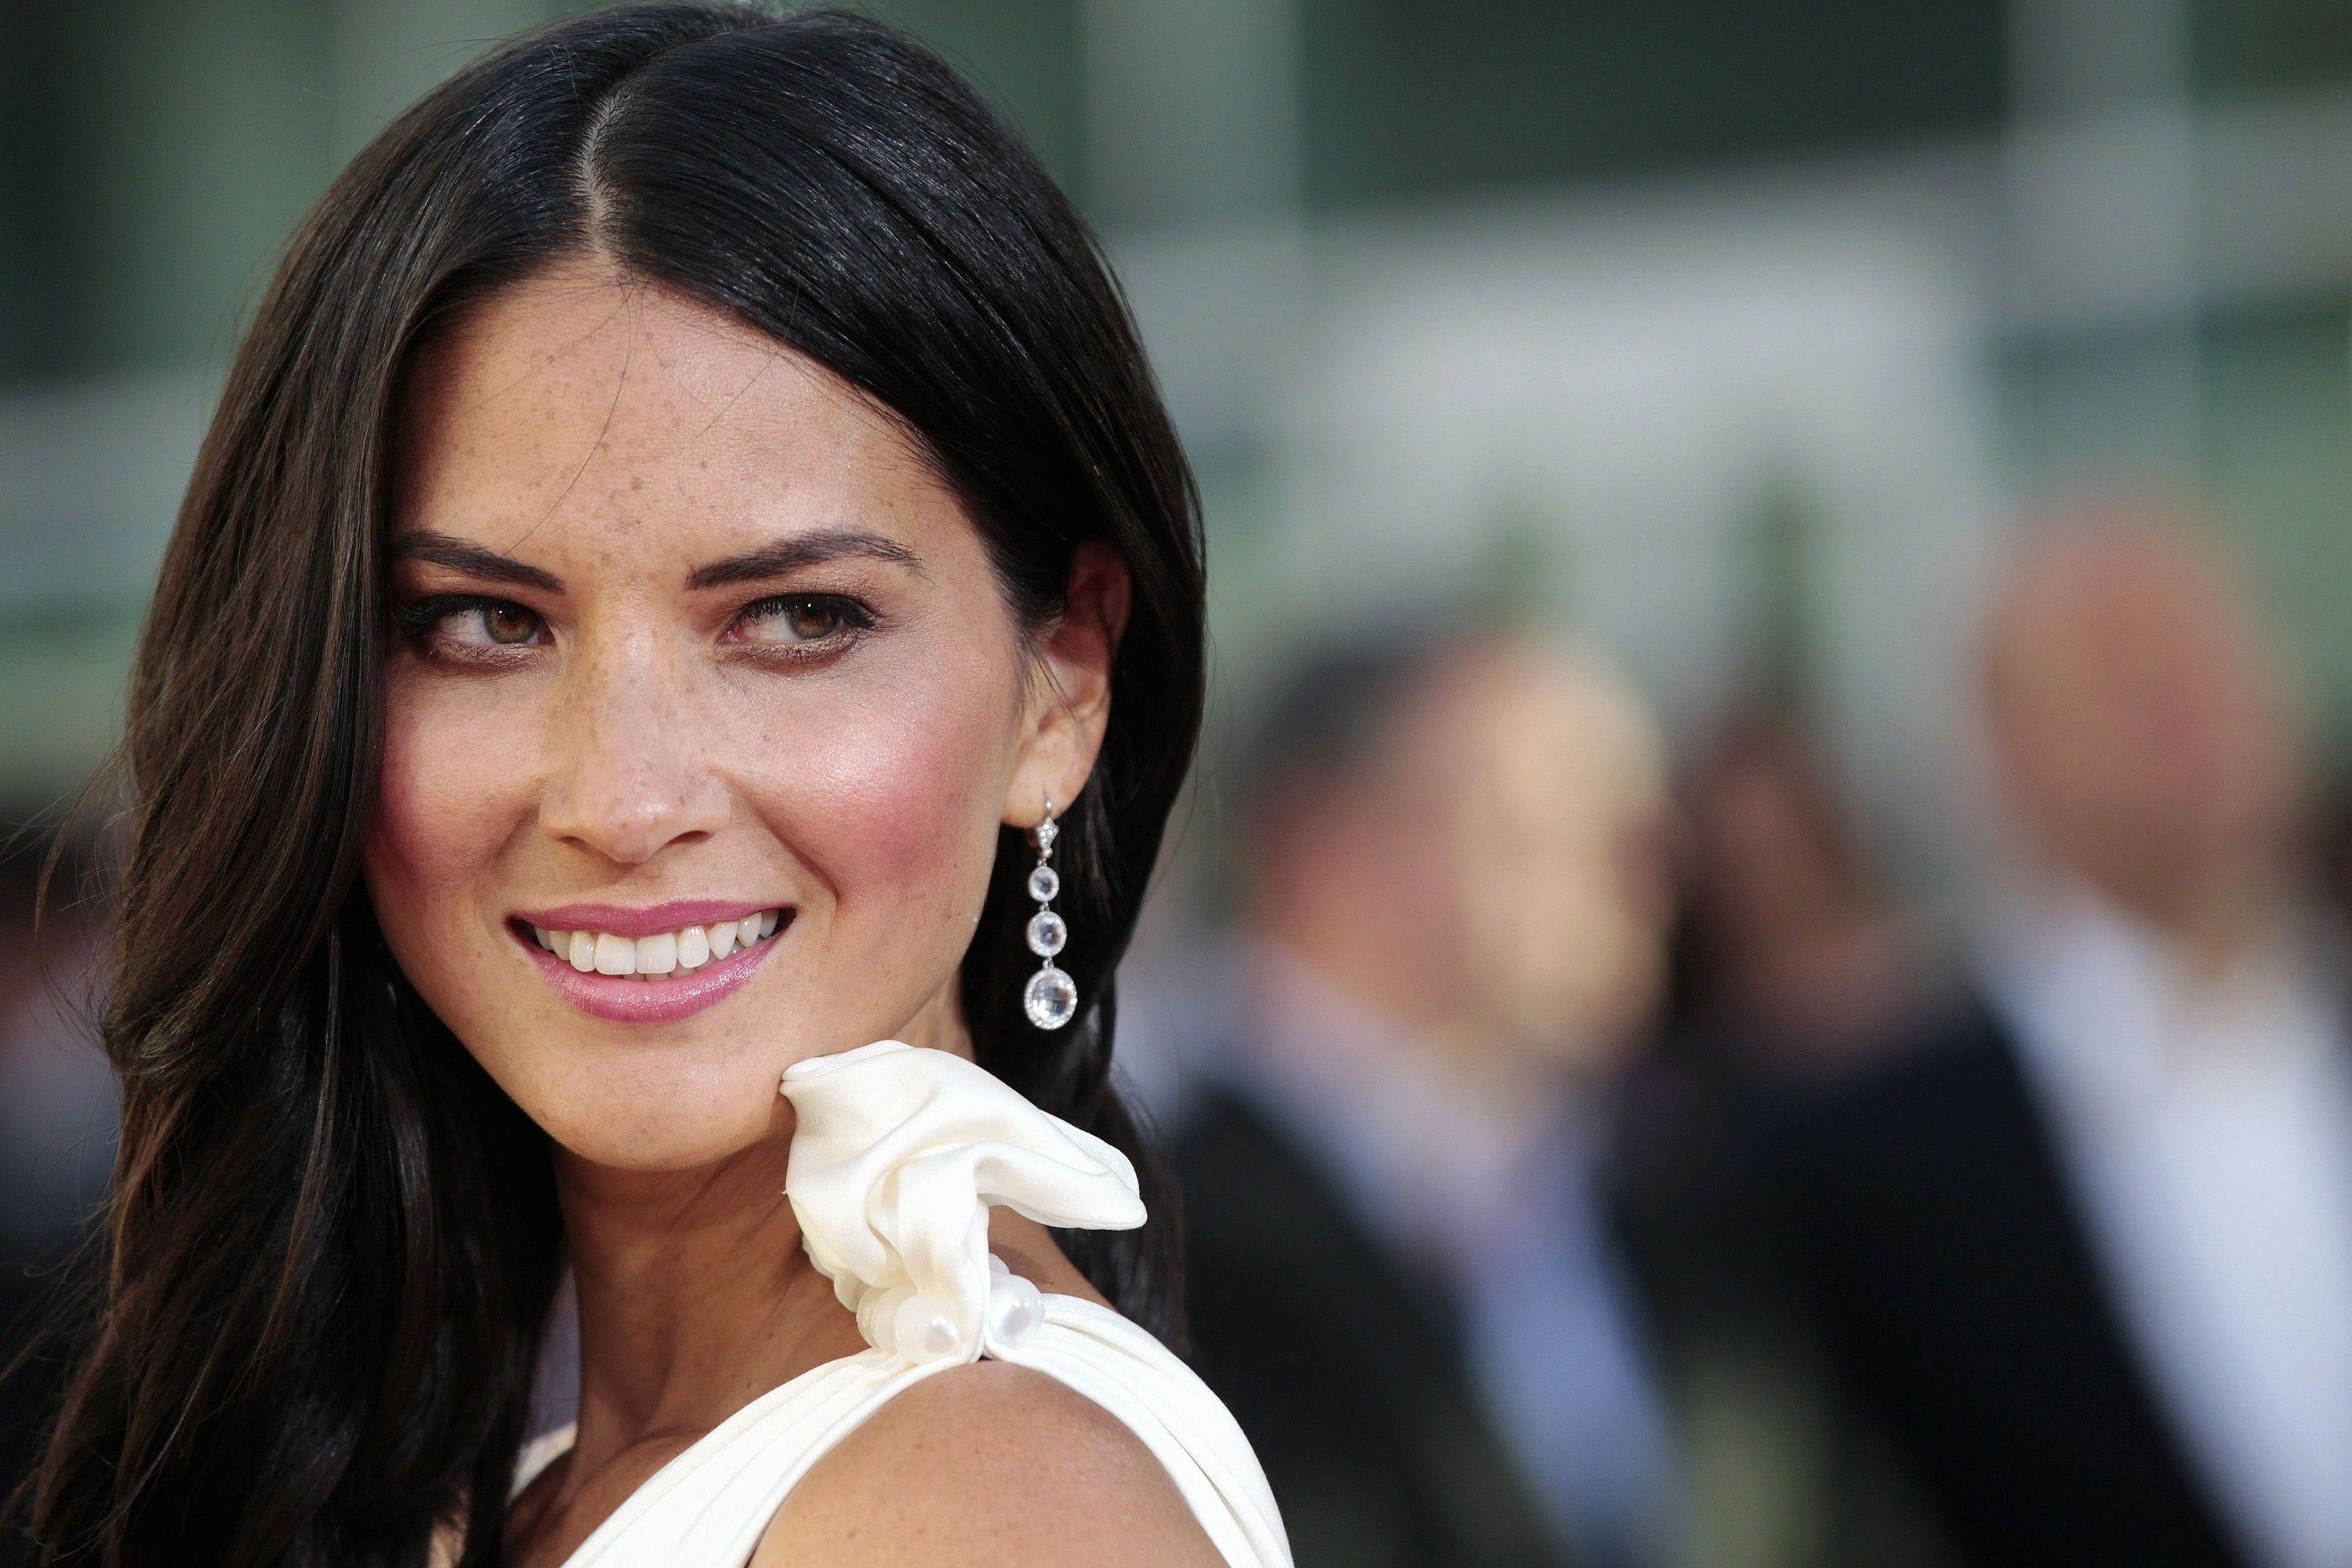 New Olivia Munn Celebrity White Dress Wallpapers HD for Desktop